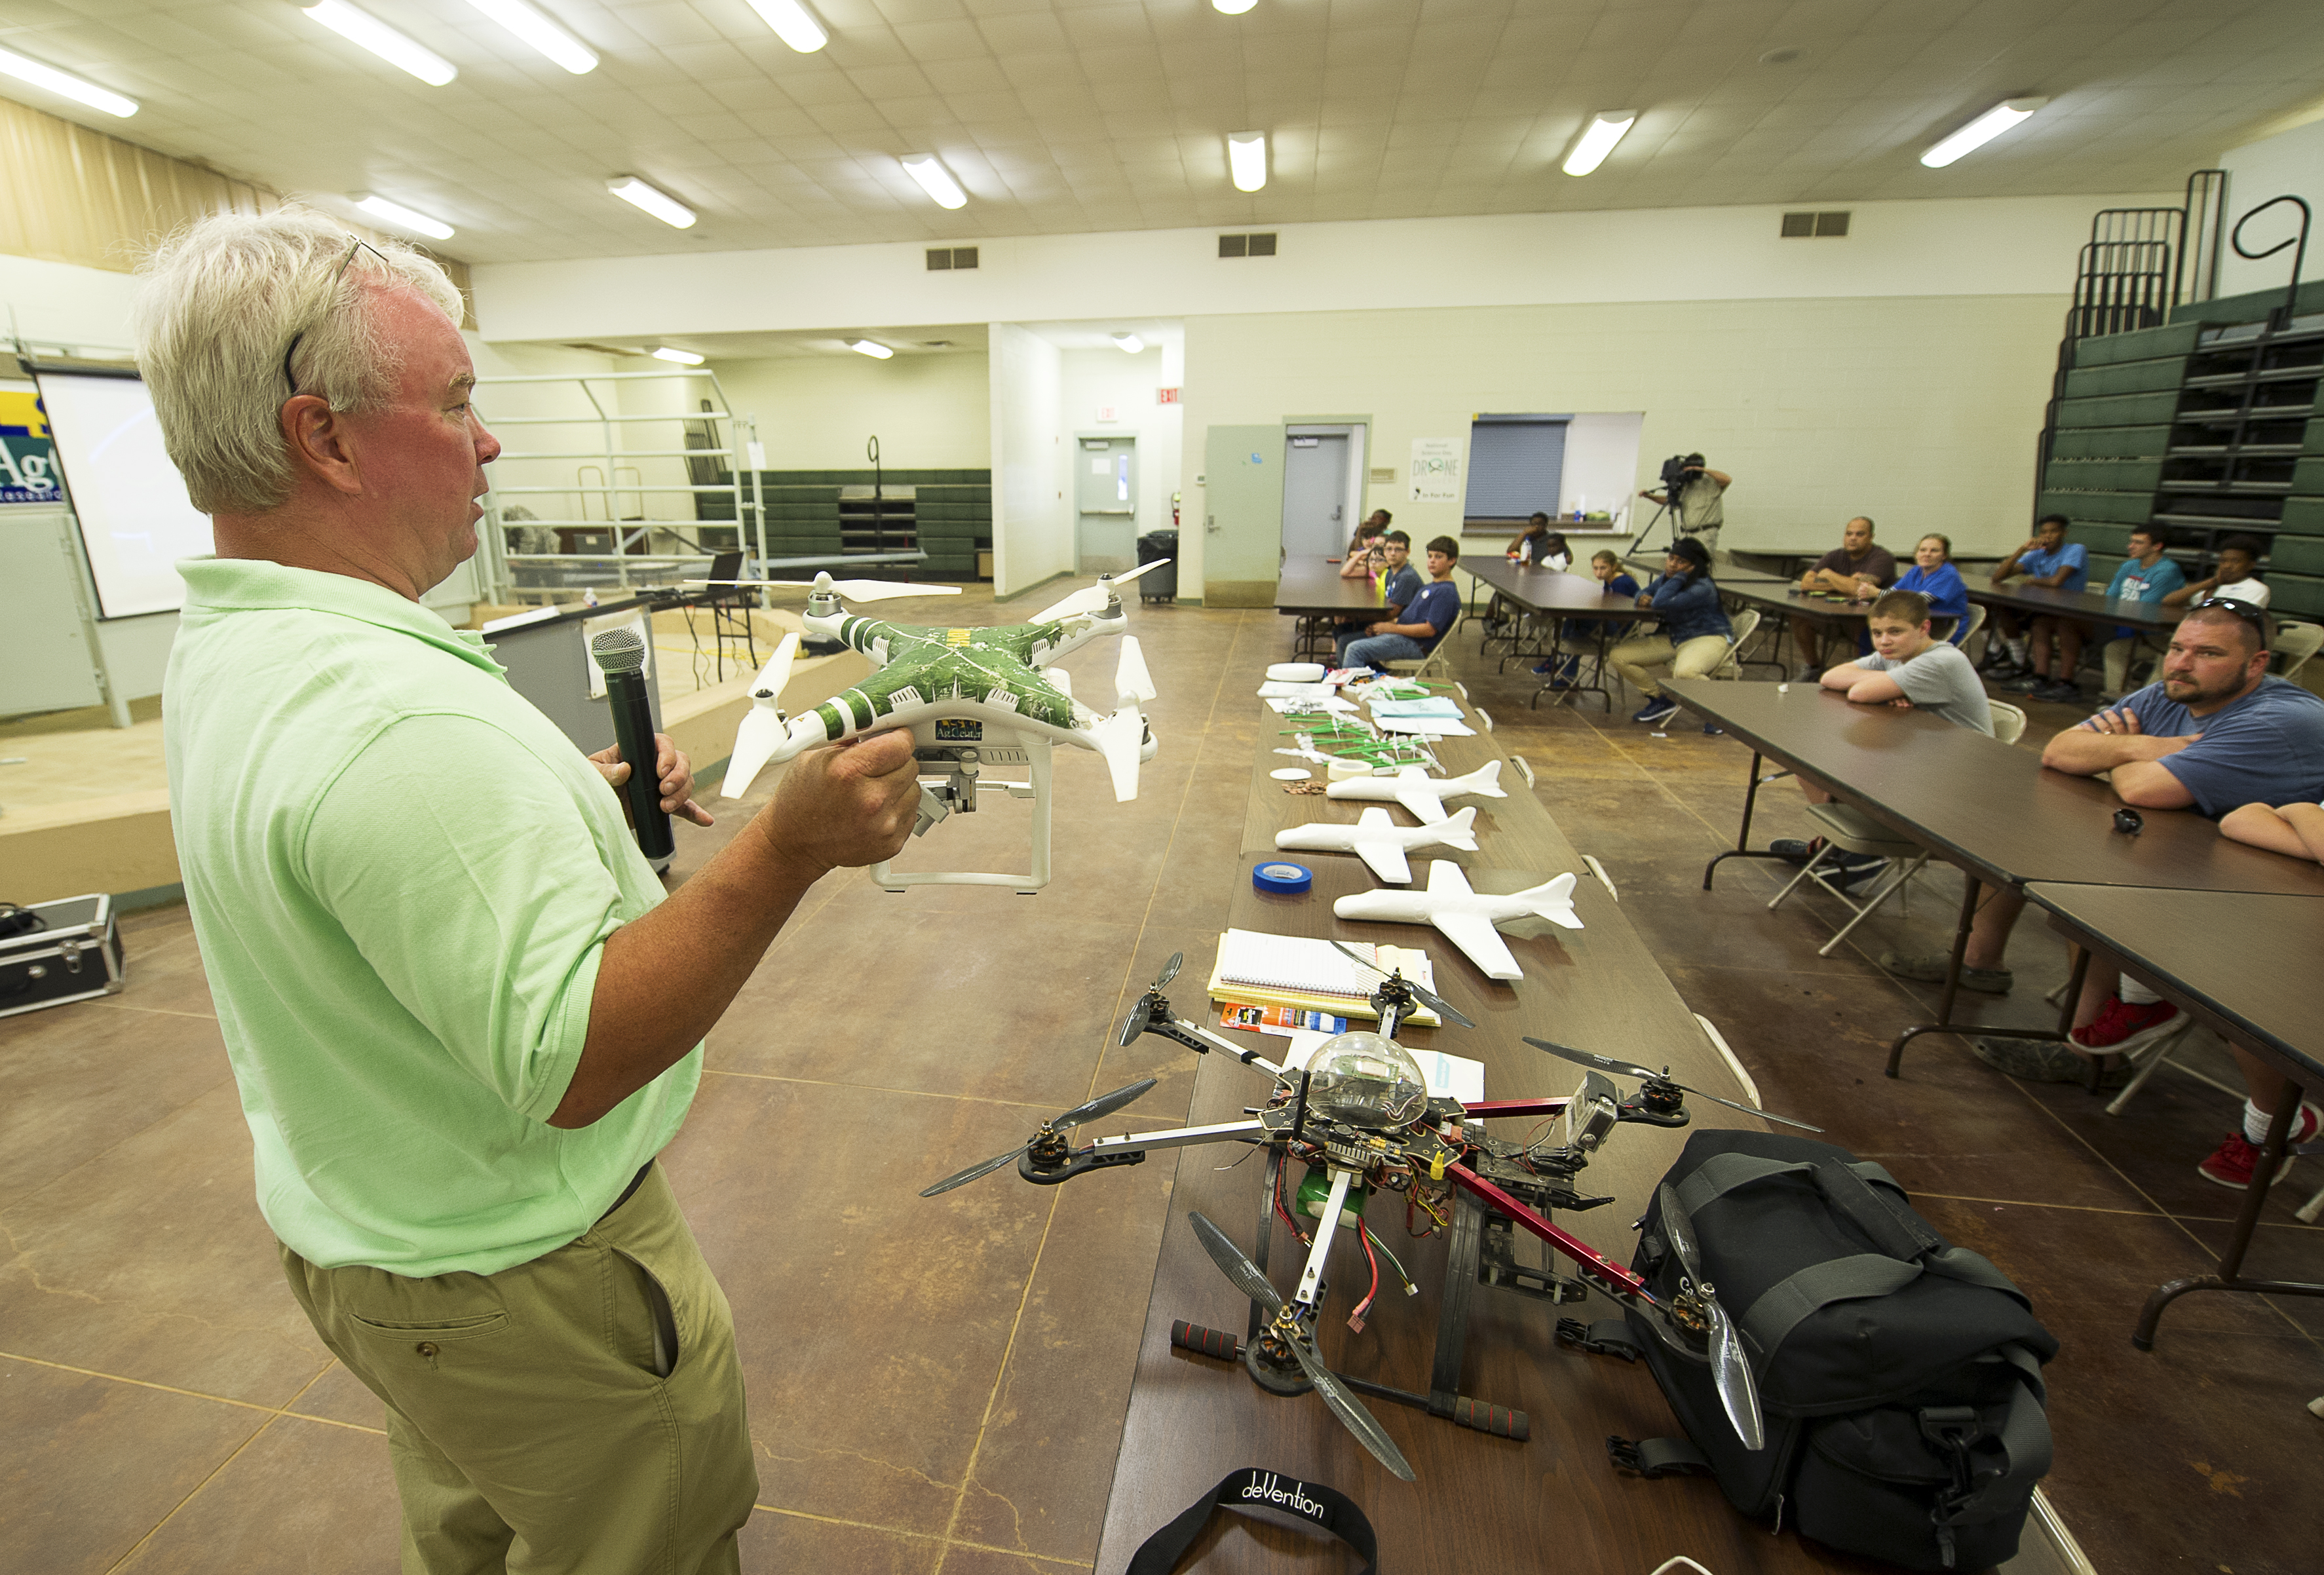 4-H'ers learn about drones at science day